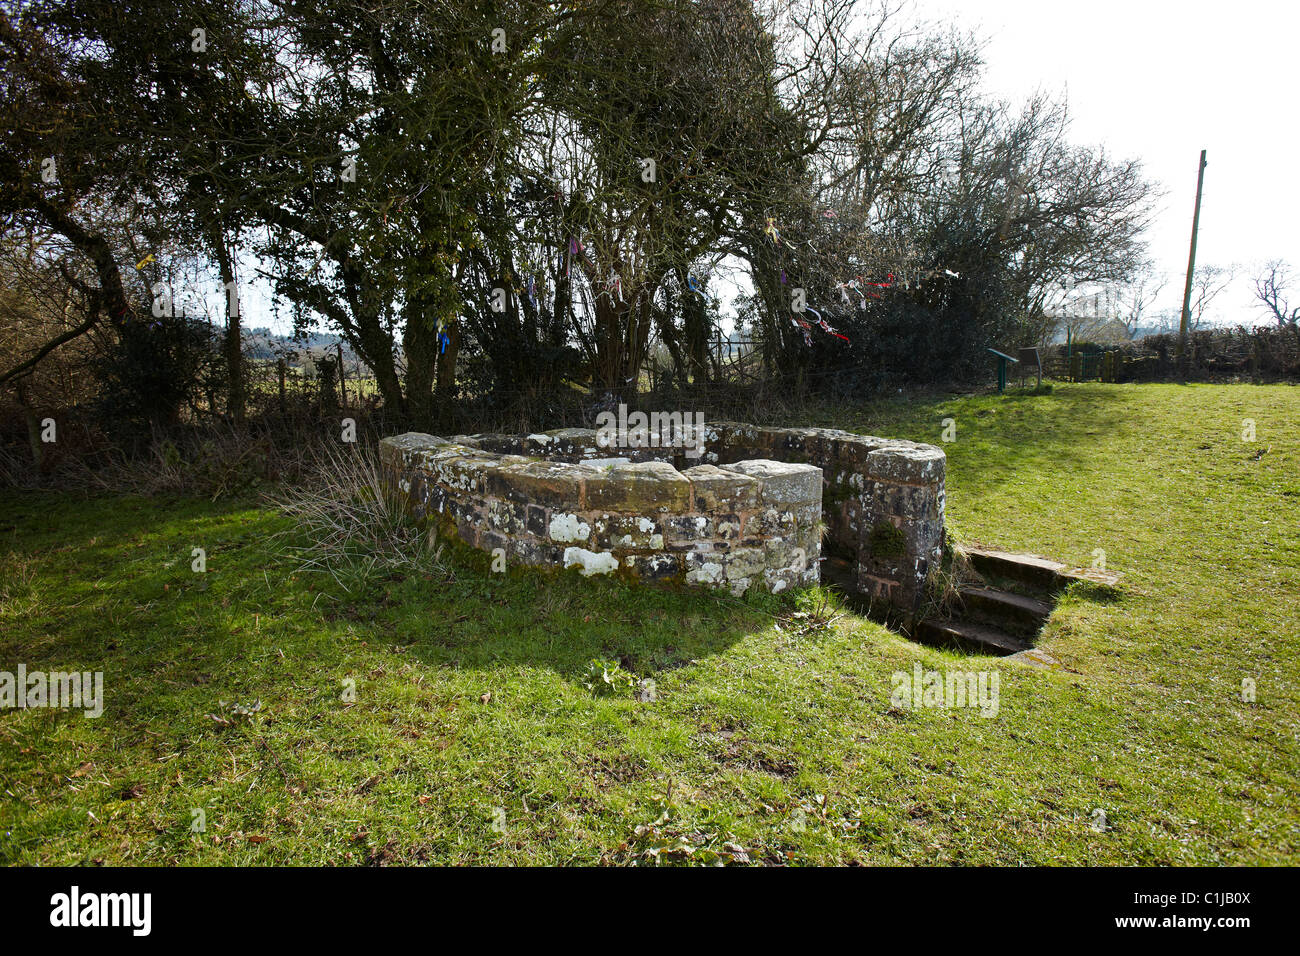 St Annes or Virtuous Well, Trellech, South Wales, UK Stock Photo